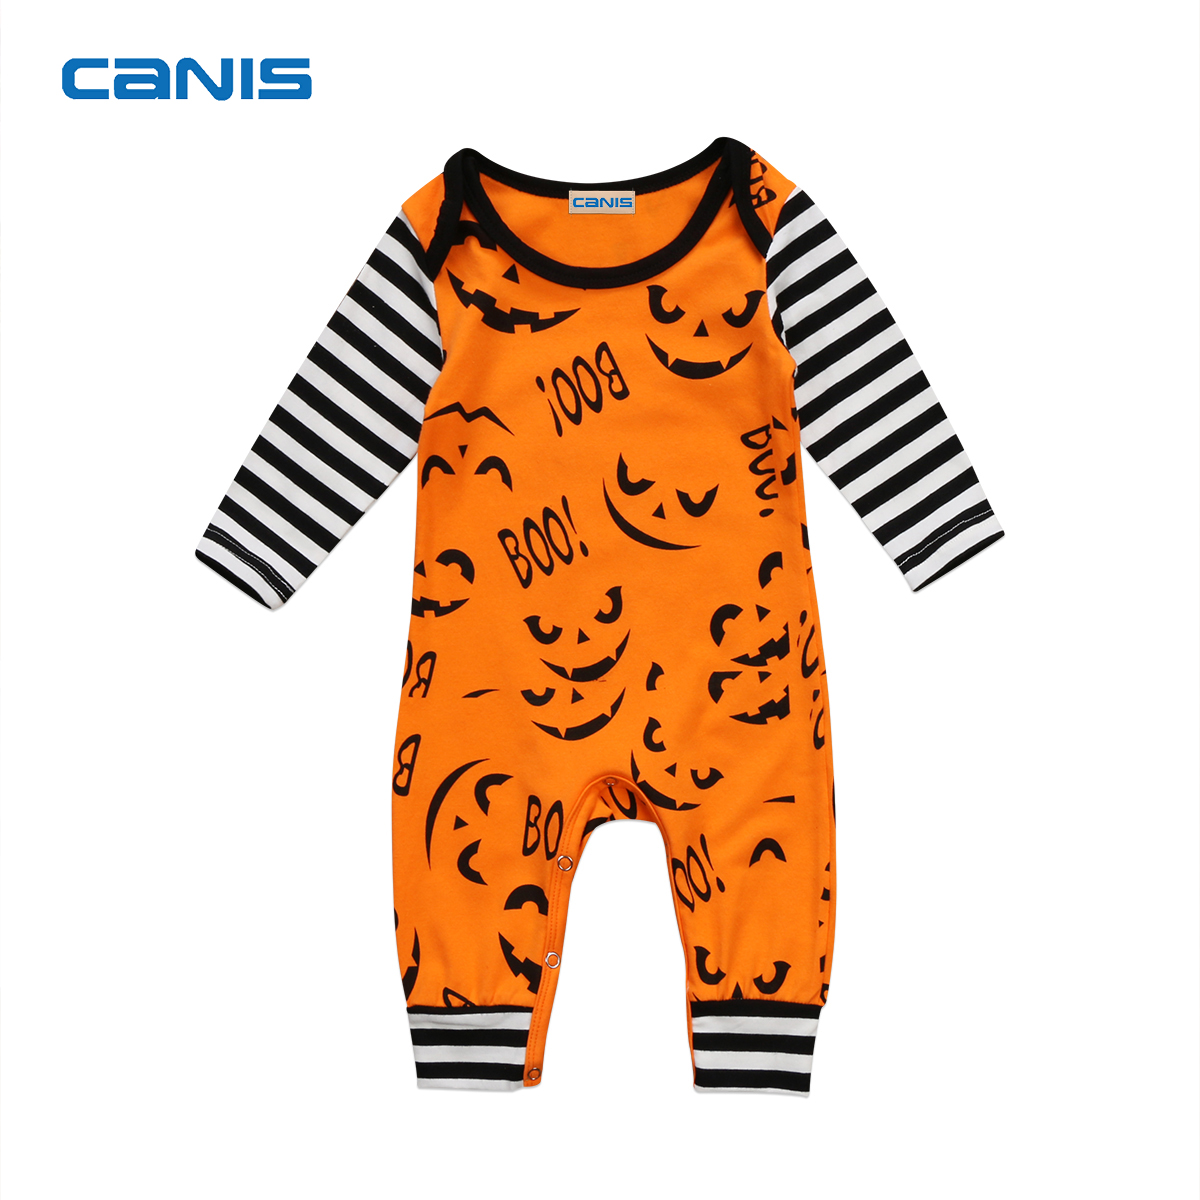 NEW Toddler Baby Boys Girls Clothes Long Sleeve Striped Romper Yellow Jumpsuit Playsuit Summer one-piece Halloween outfit 0-3Y 2016 hot selling baby kids girls one piece sleeveless heart dots bib playsuit jumpsuit t shirt pants outfit clothes 2 7y